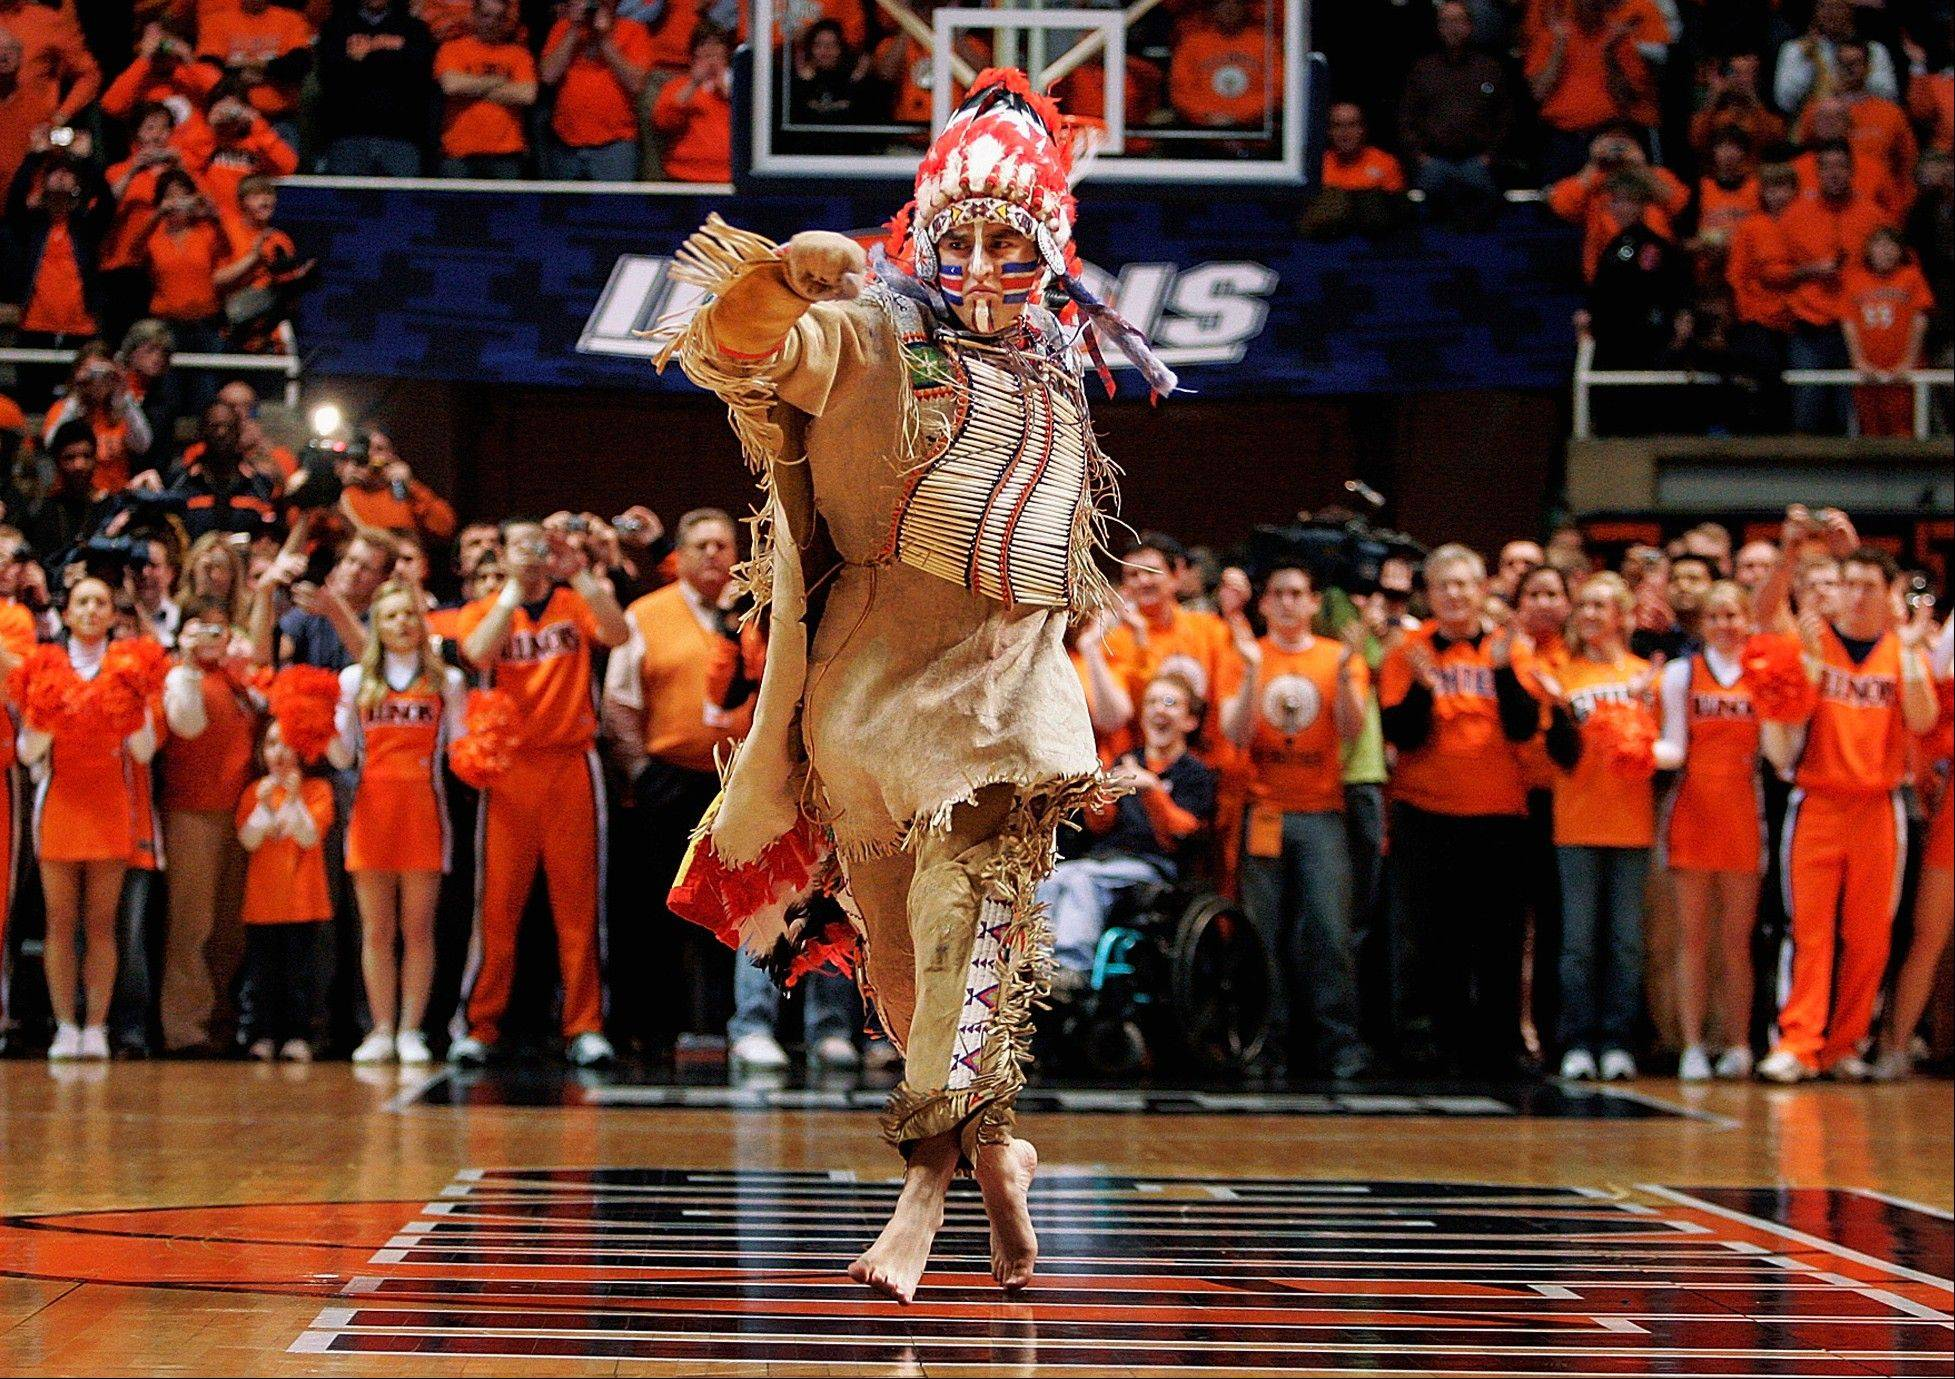 U of I committee says Chief Illiniwek's time has passed